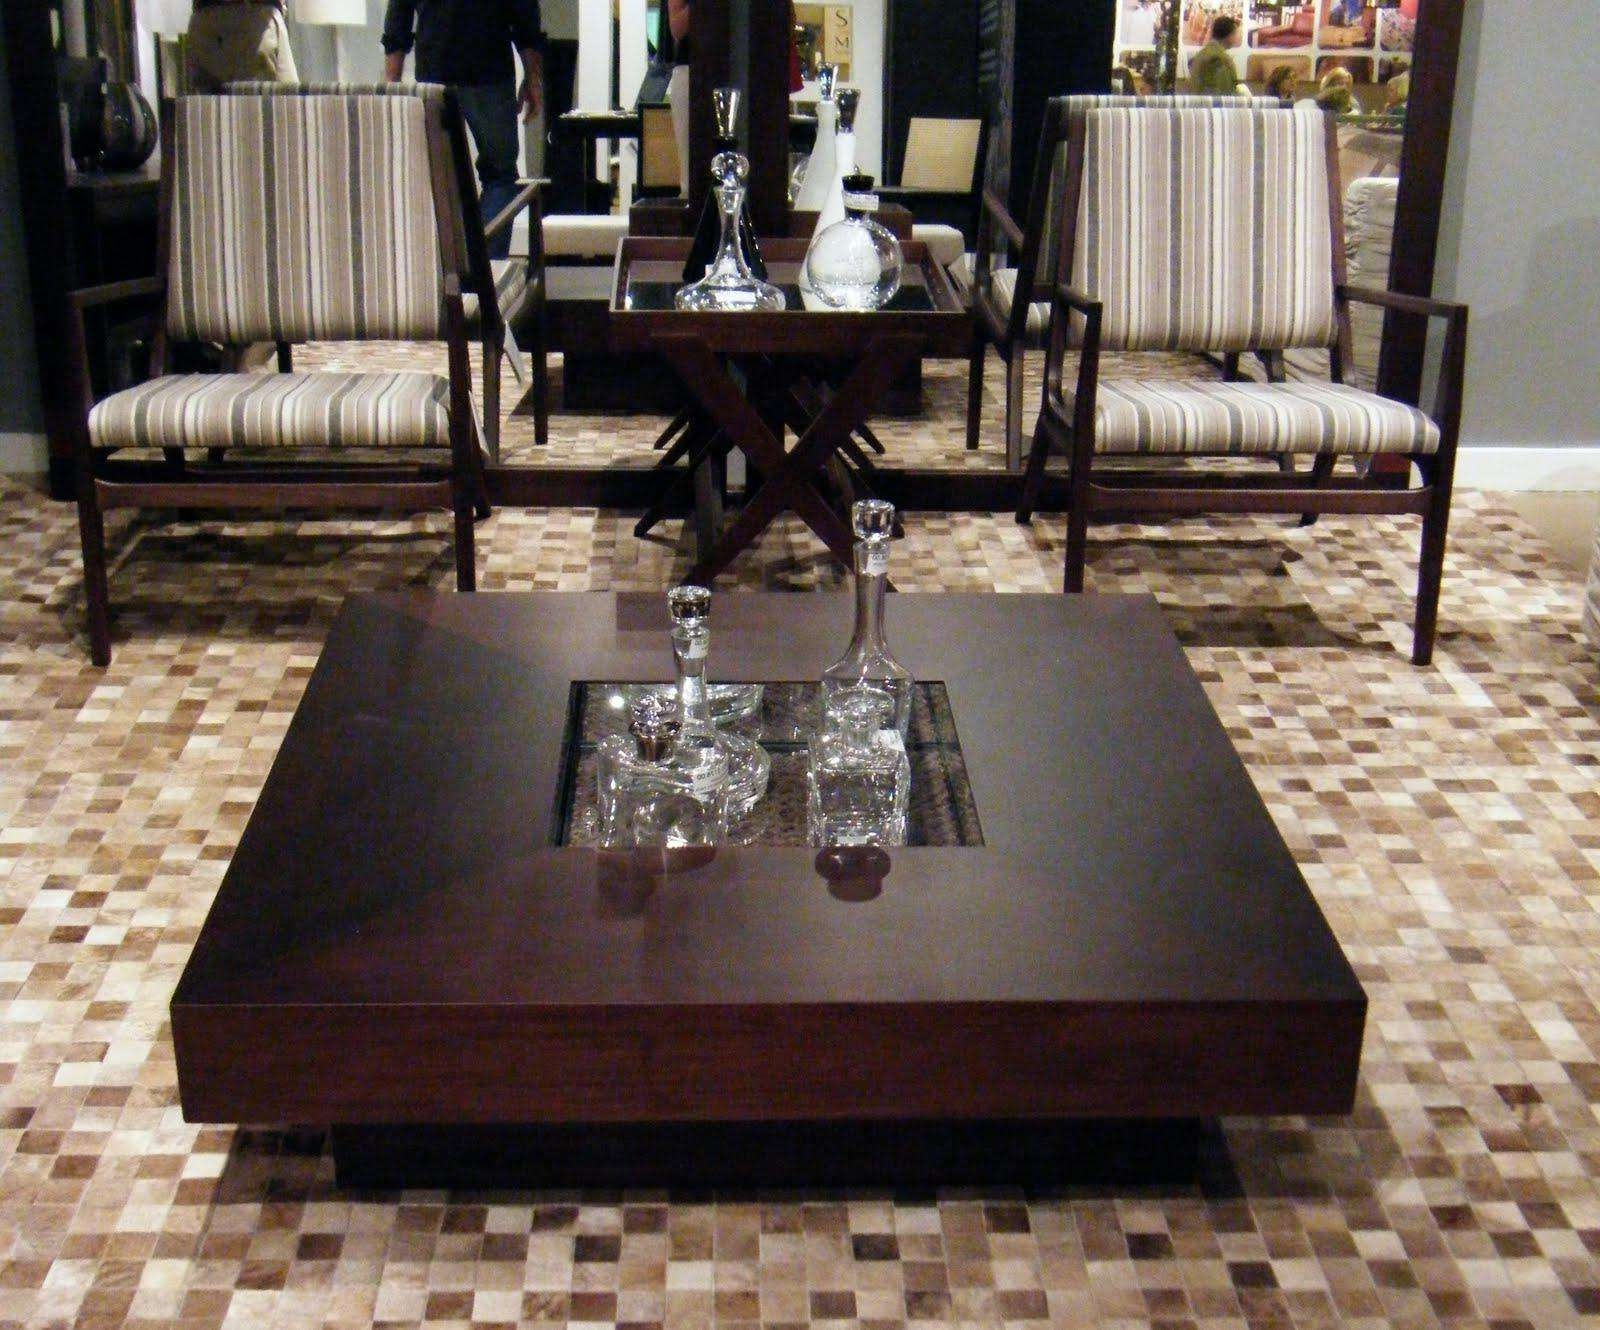 Square Shaped Coffee Table Material Plastic Acrylic Style Glam With Fashionable Square Shaped Coffee Tables (View 17 of 20)